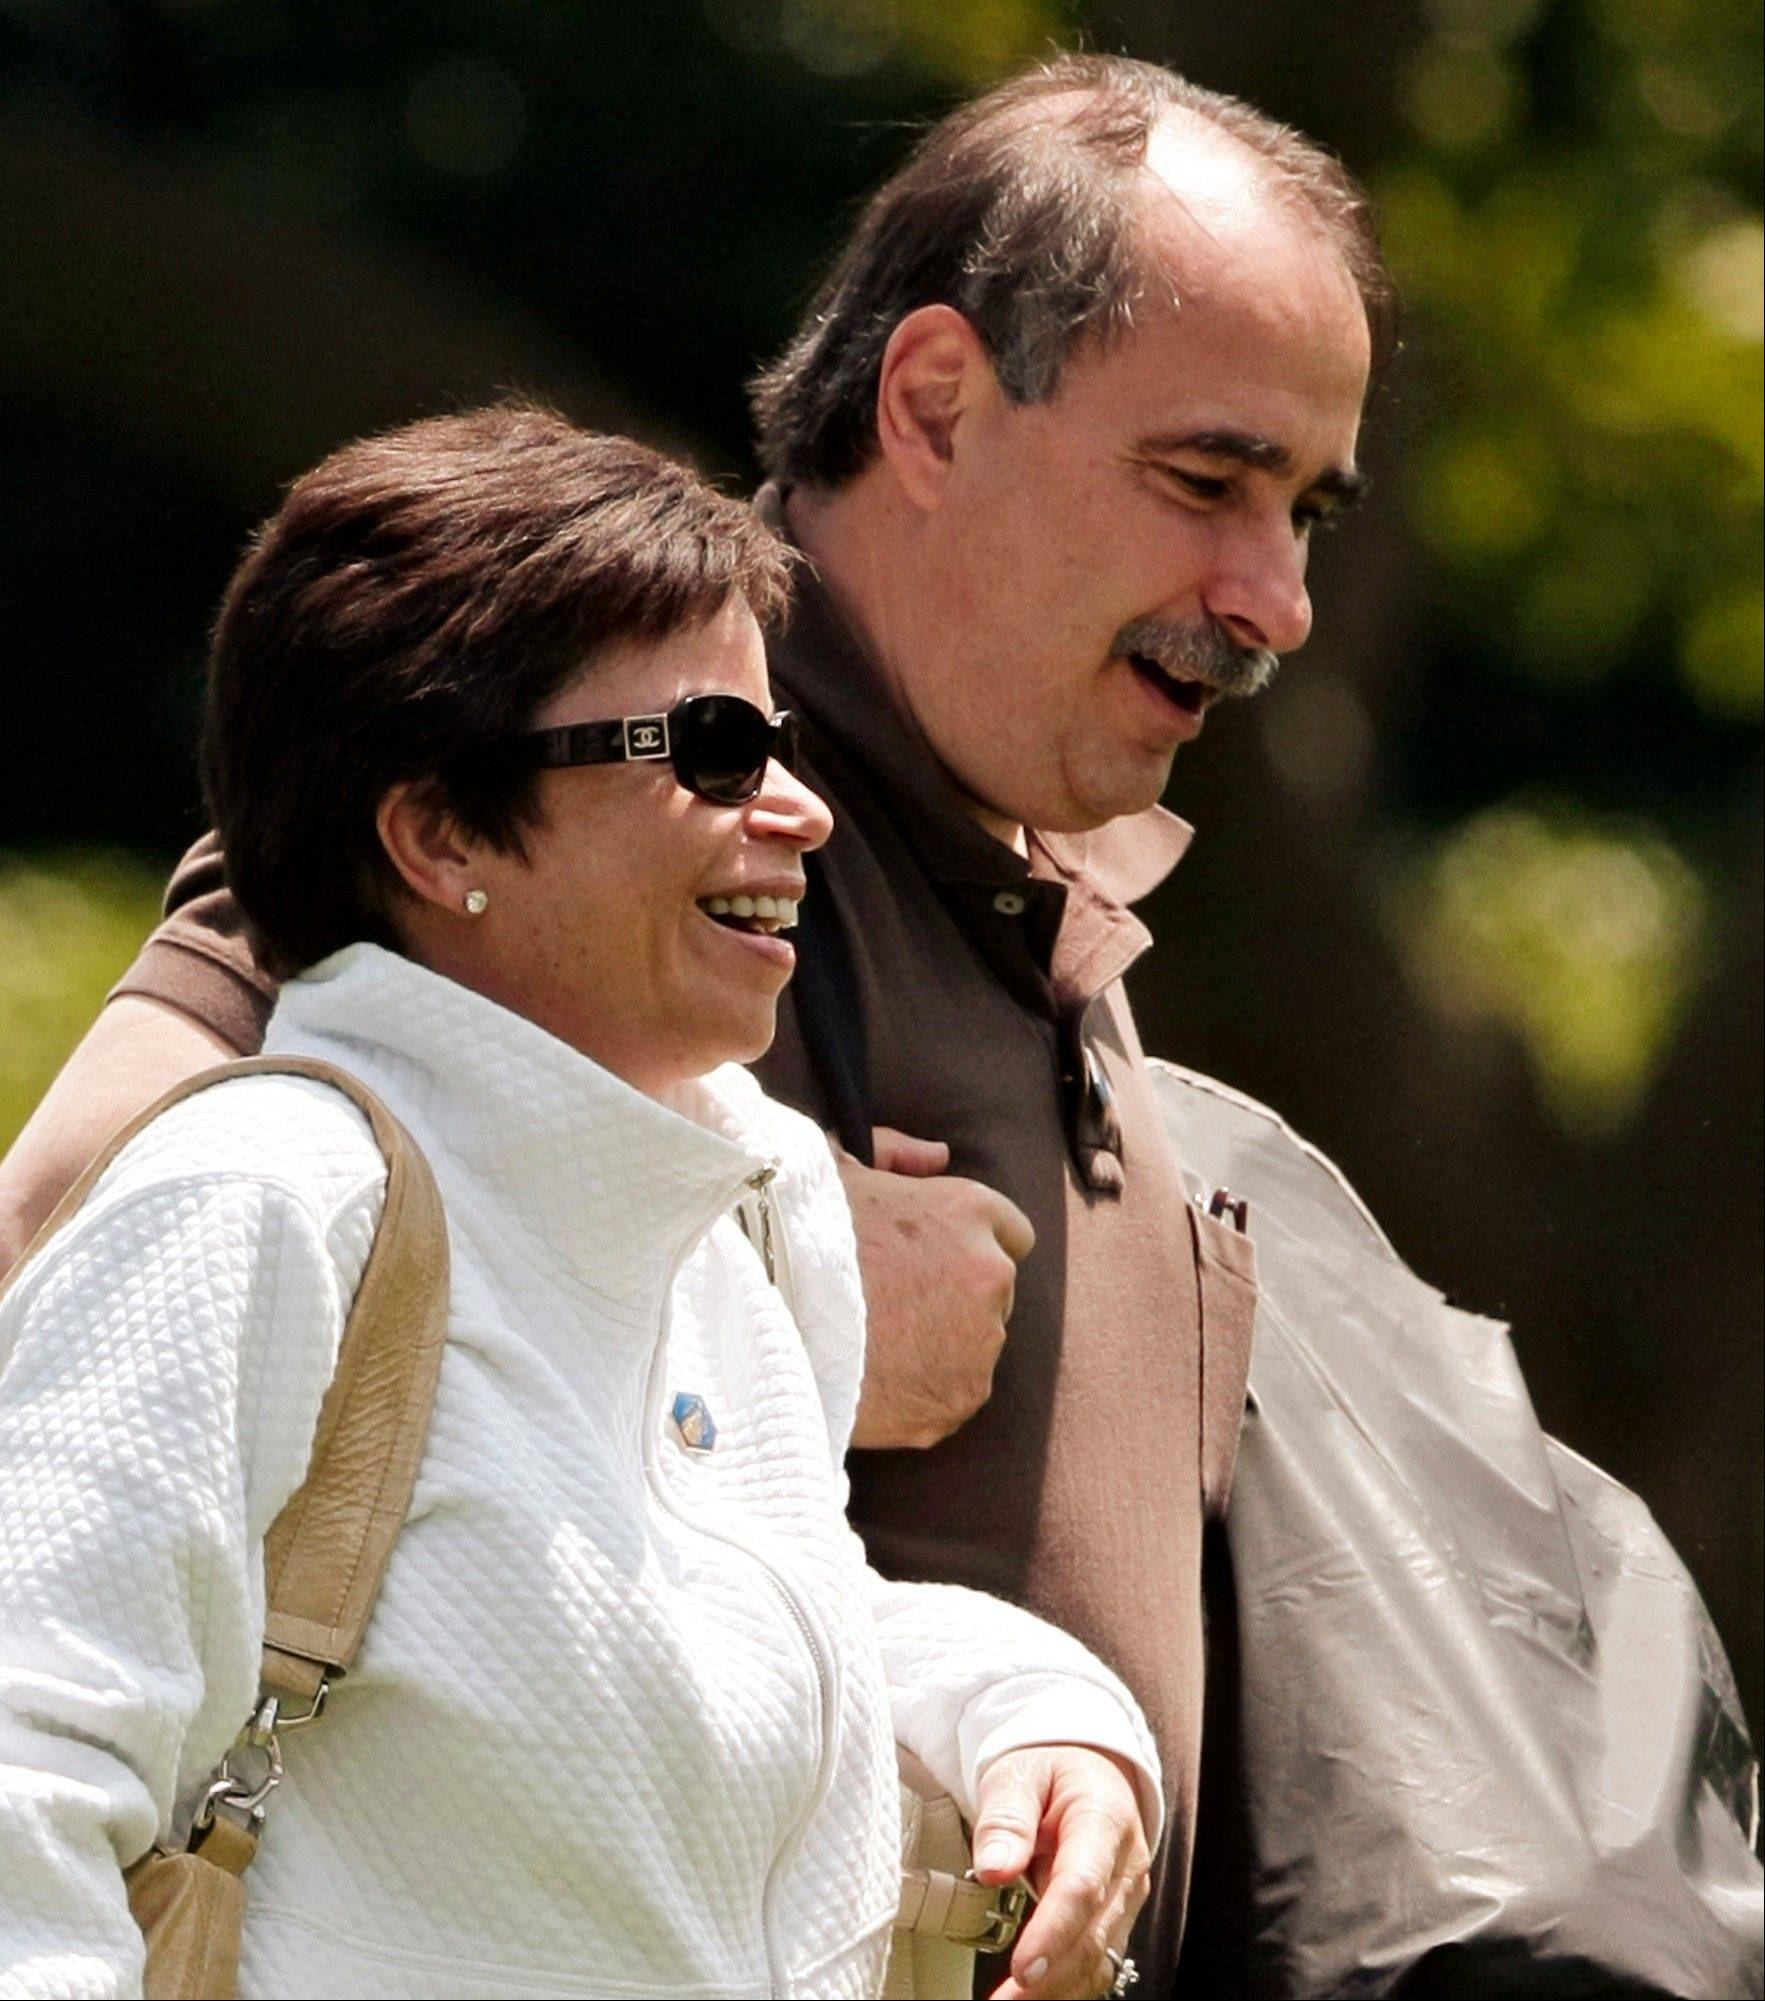 In this June 7, 2009, photo, senior advisers Valerie Jarret and David Axelrod, right, walk across the South Lawn of the White House after returning from a trip with President Barack Obama. The Obama administration Tuesday unexpectedly announced a one-year delay, until 2015, in a central requirement of the new health care law that medium and large companies provide coverage for their workers or face fines.